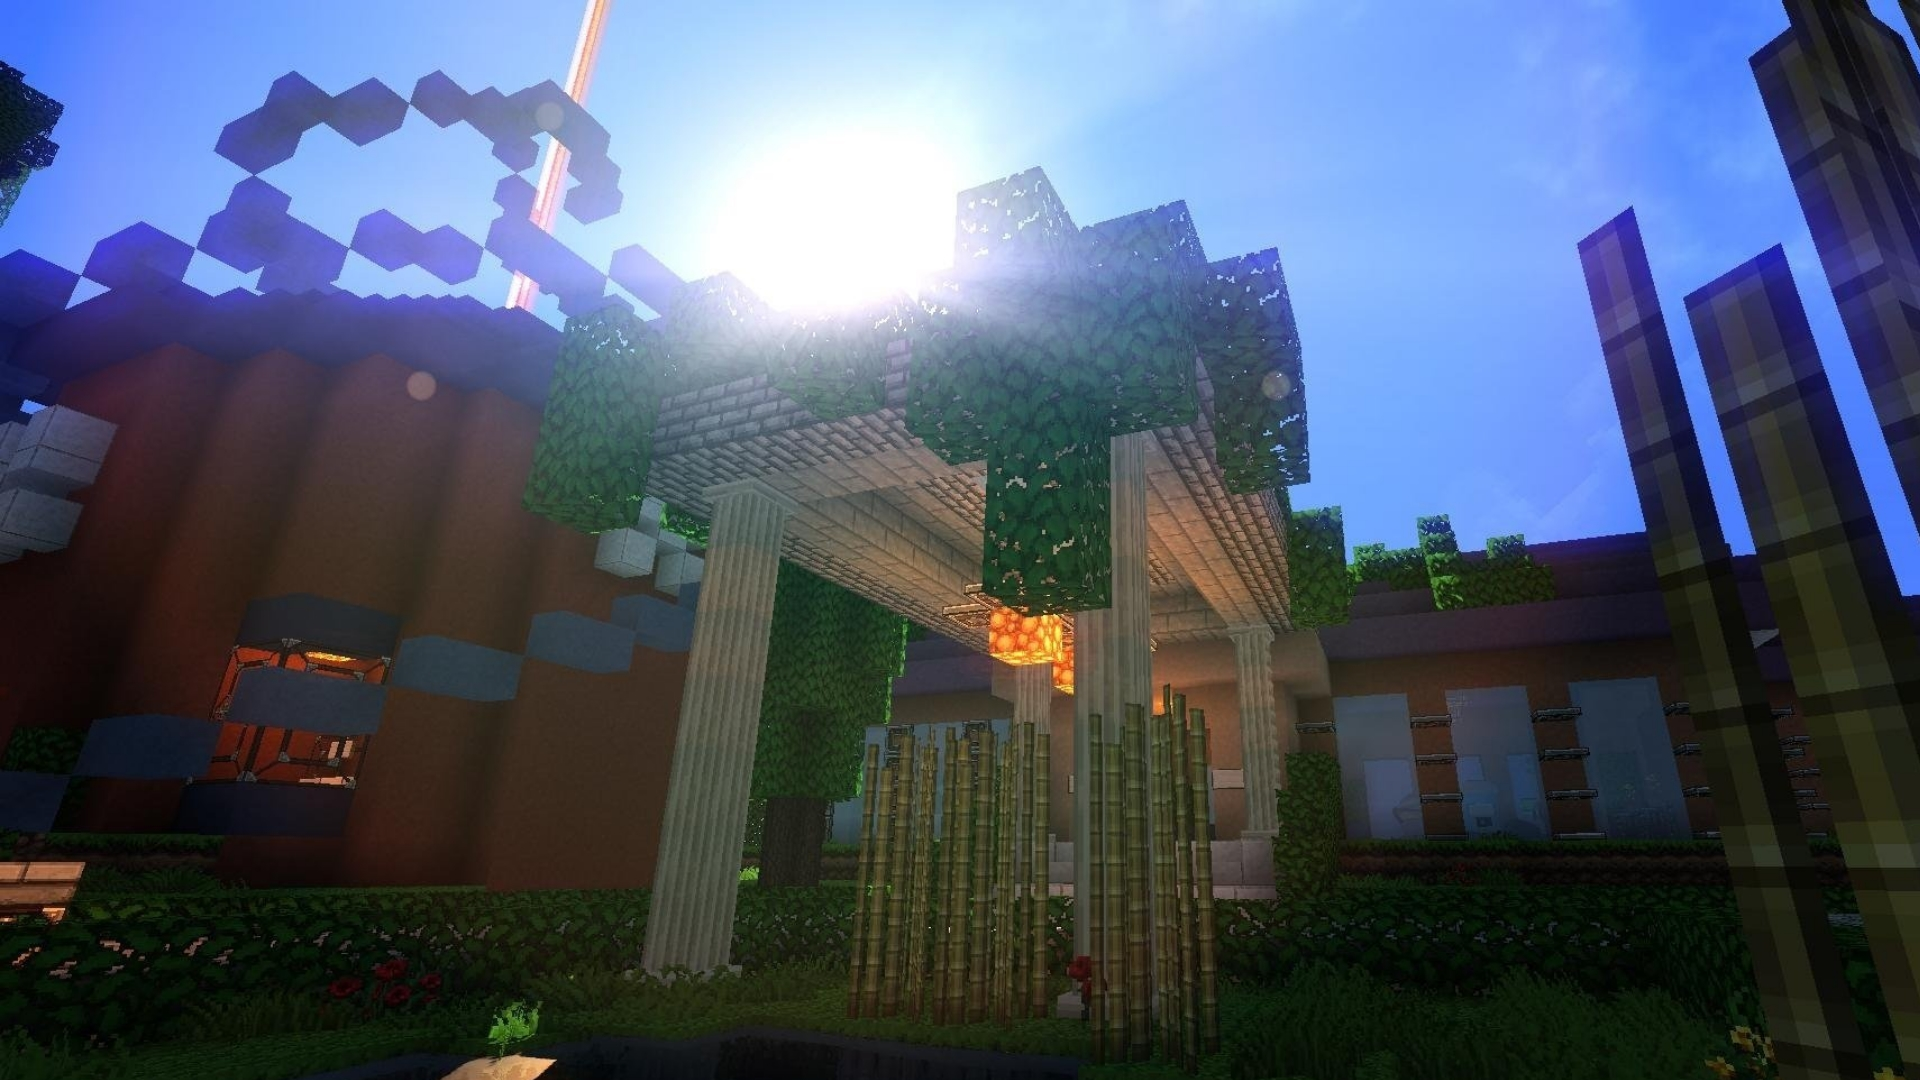 Minecraft 2 release date, news, and mods – all the latest details